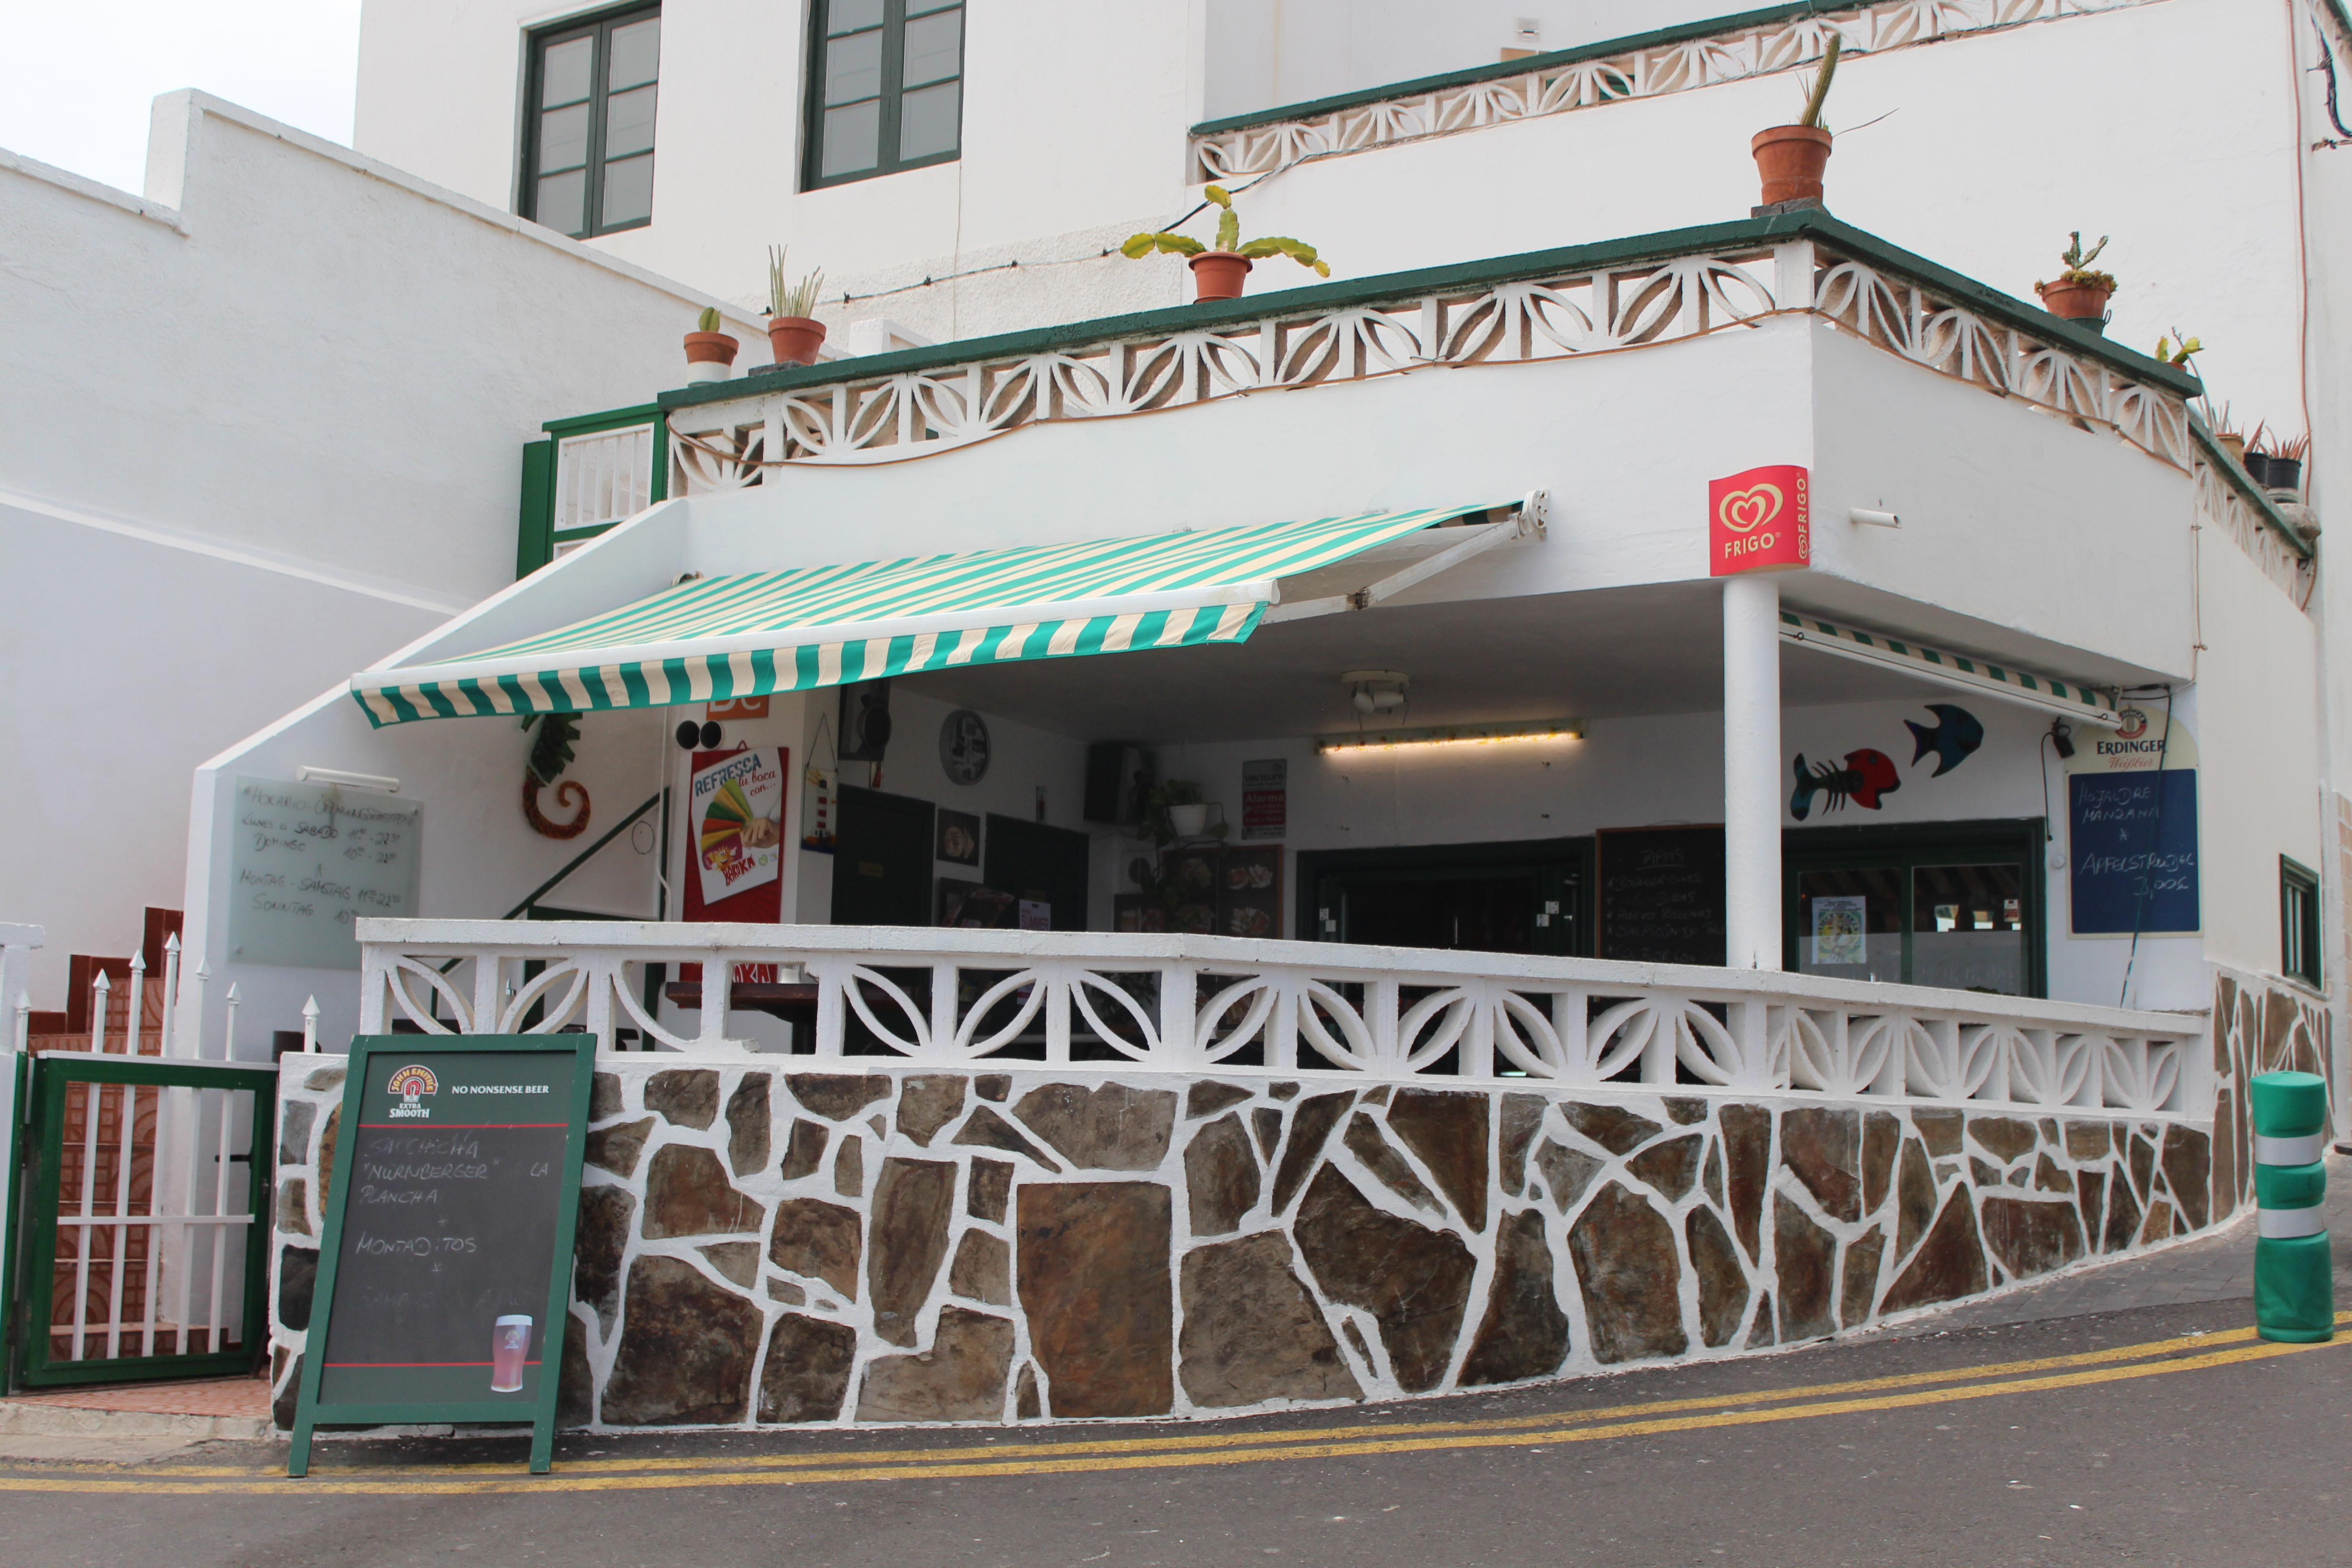 A small white washed cafe on the corner of a quiet road with a green and white striped awning.